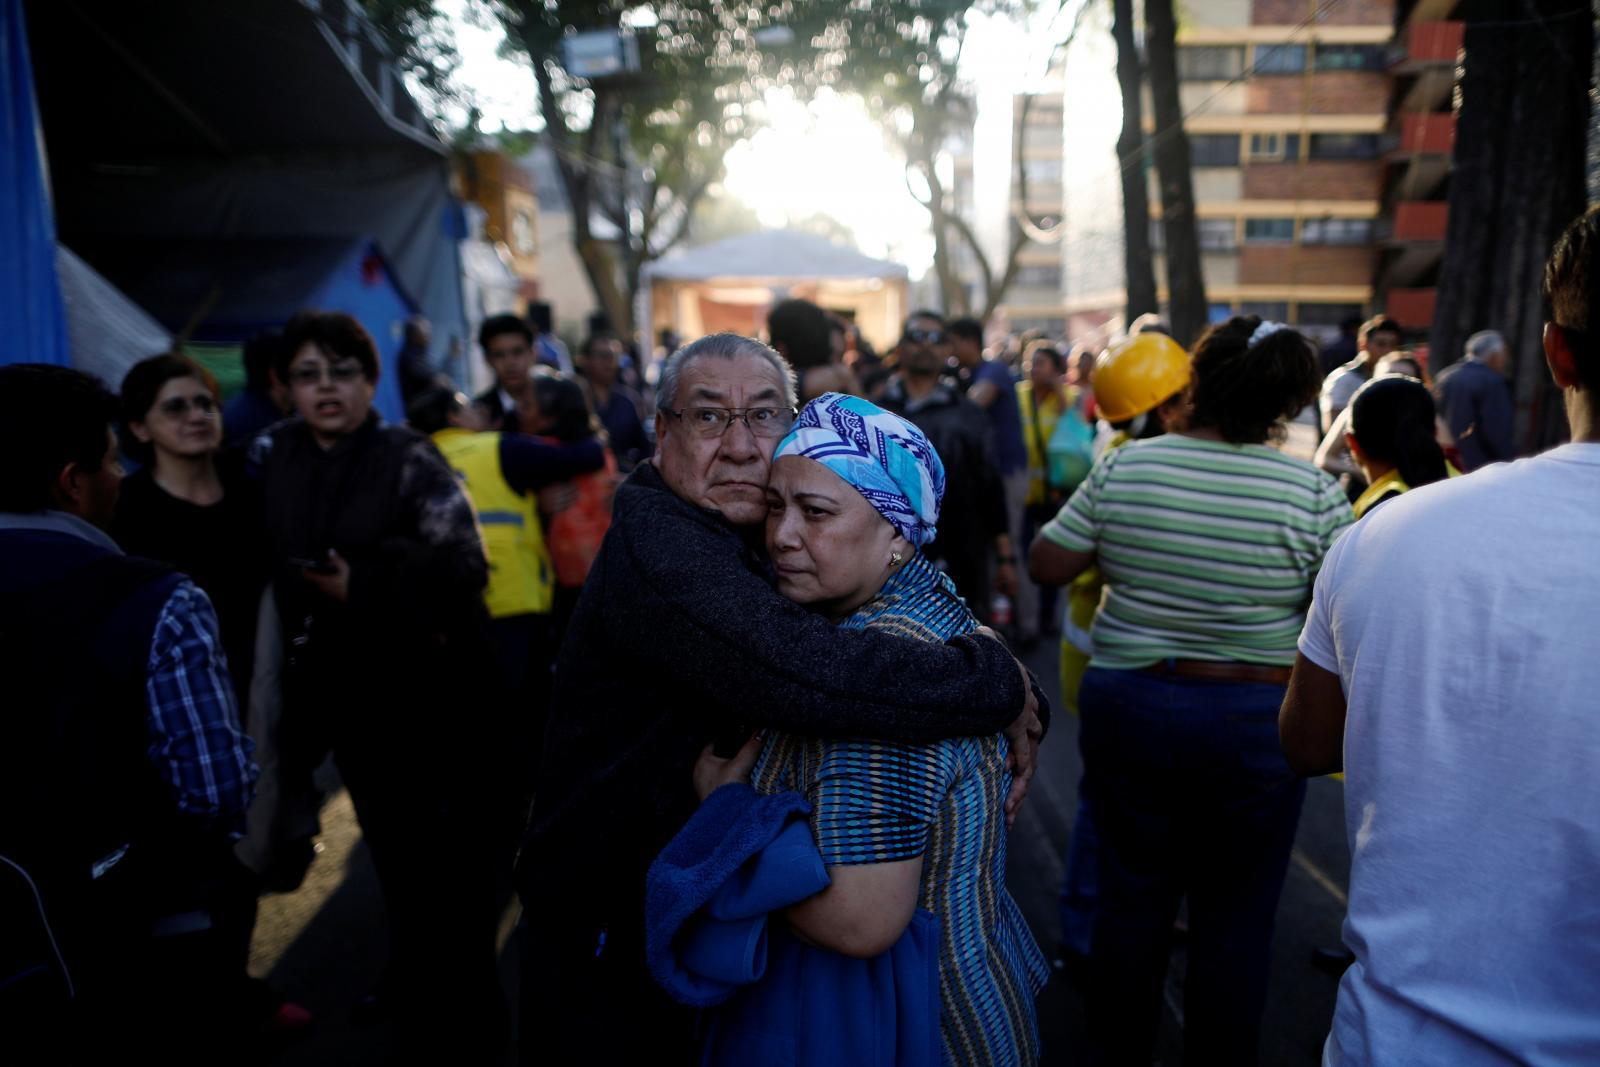 Powerful 7.2 quake rocks buildings in Mexico, minor damage reported